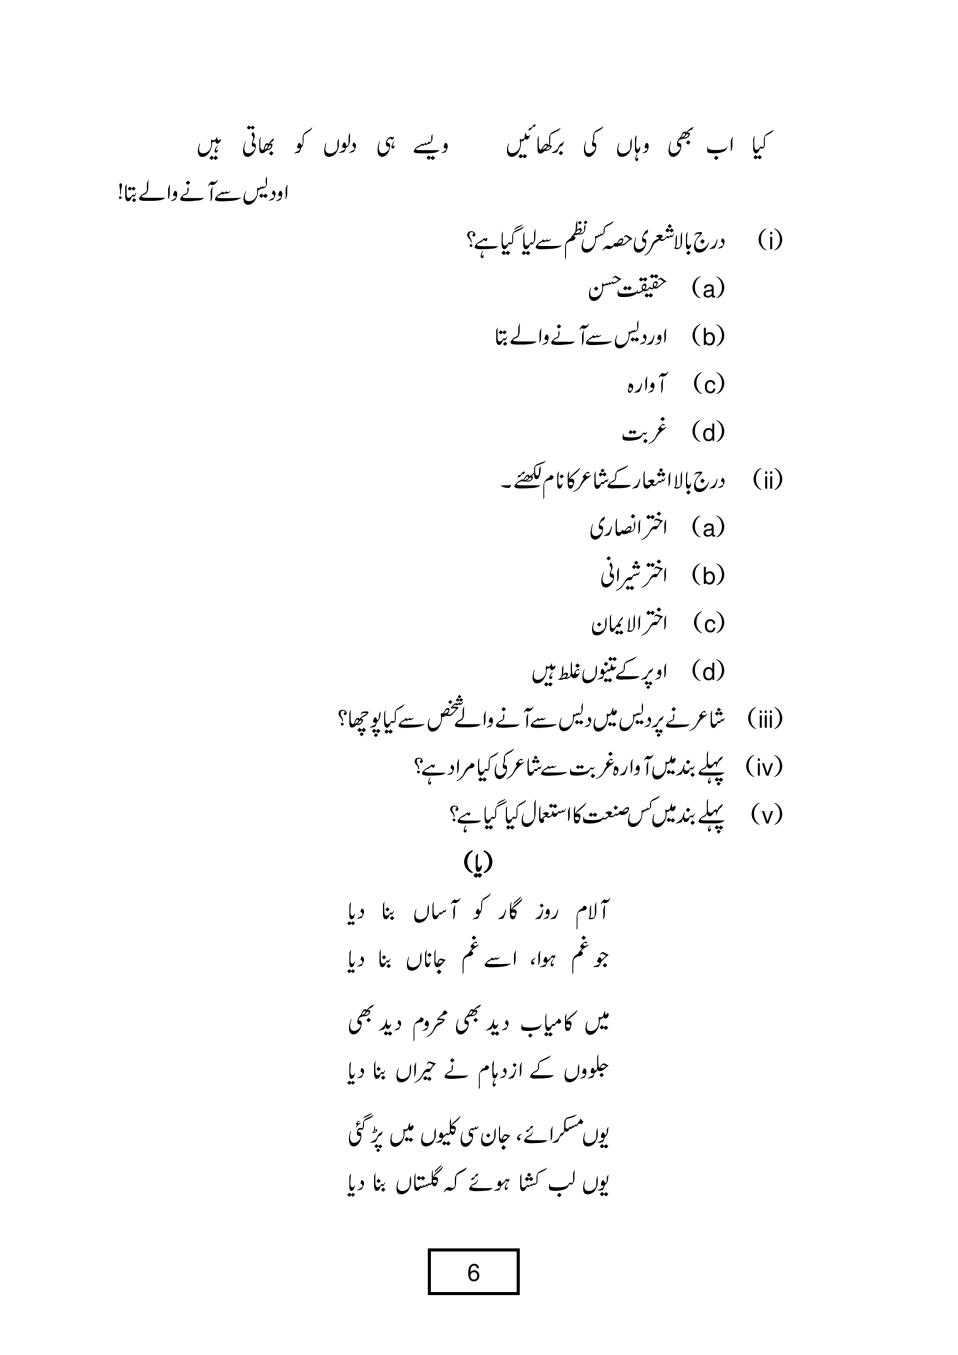 CBSE Sample Papers 2020 for Class 10 – Urdu